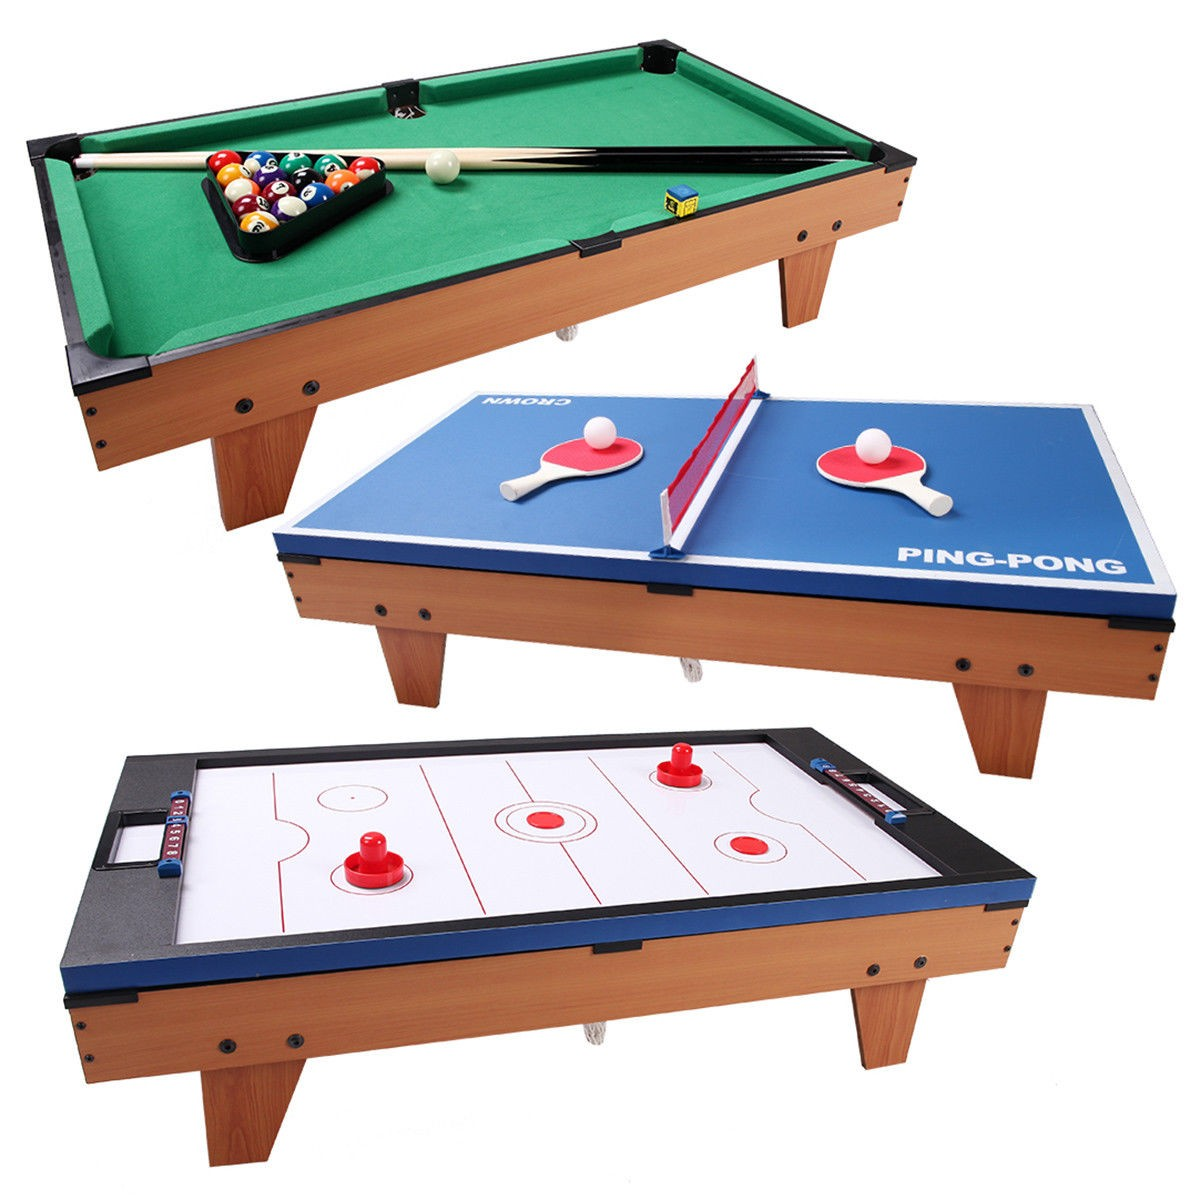 3 in 1 Air Hockey Ping Pong Billiard Multifunctional Table by